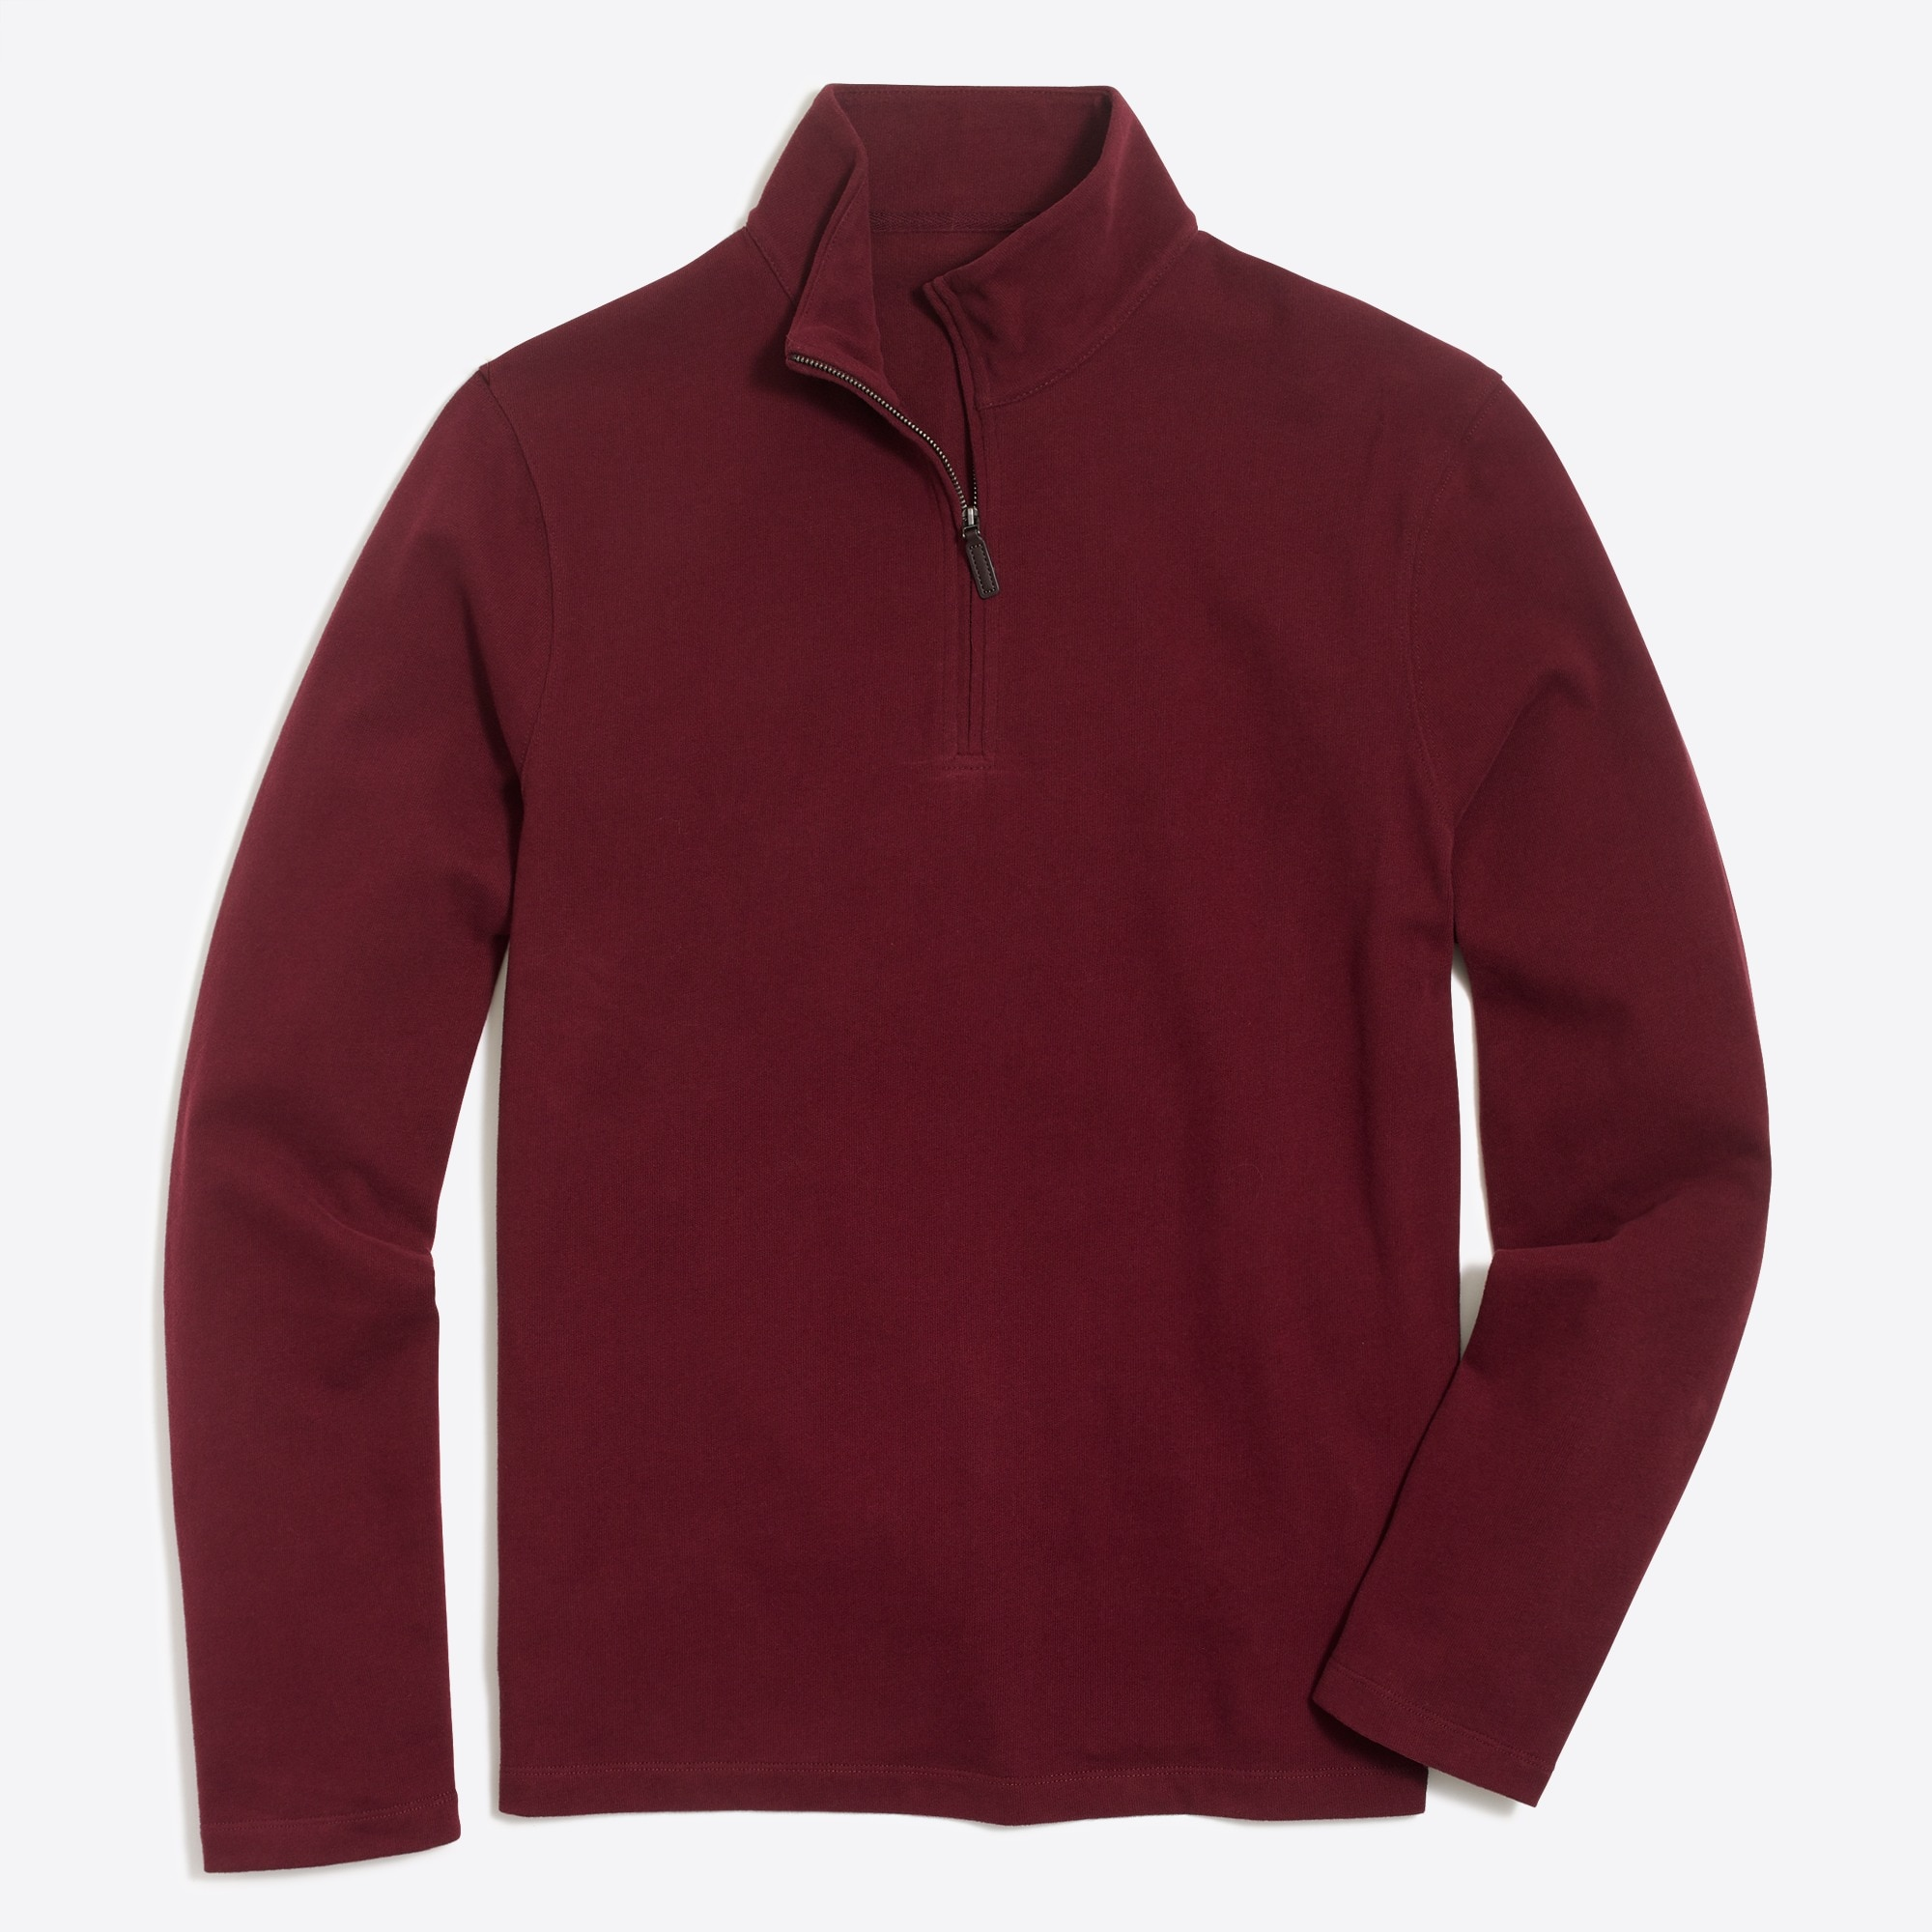 Sueded cotton jersey half-zip pullover